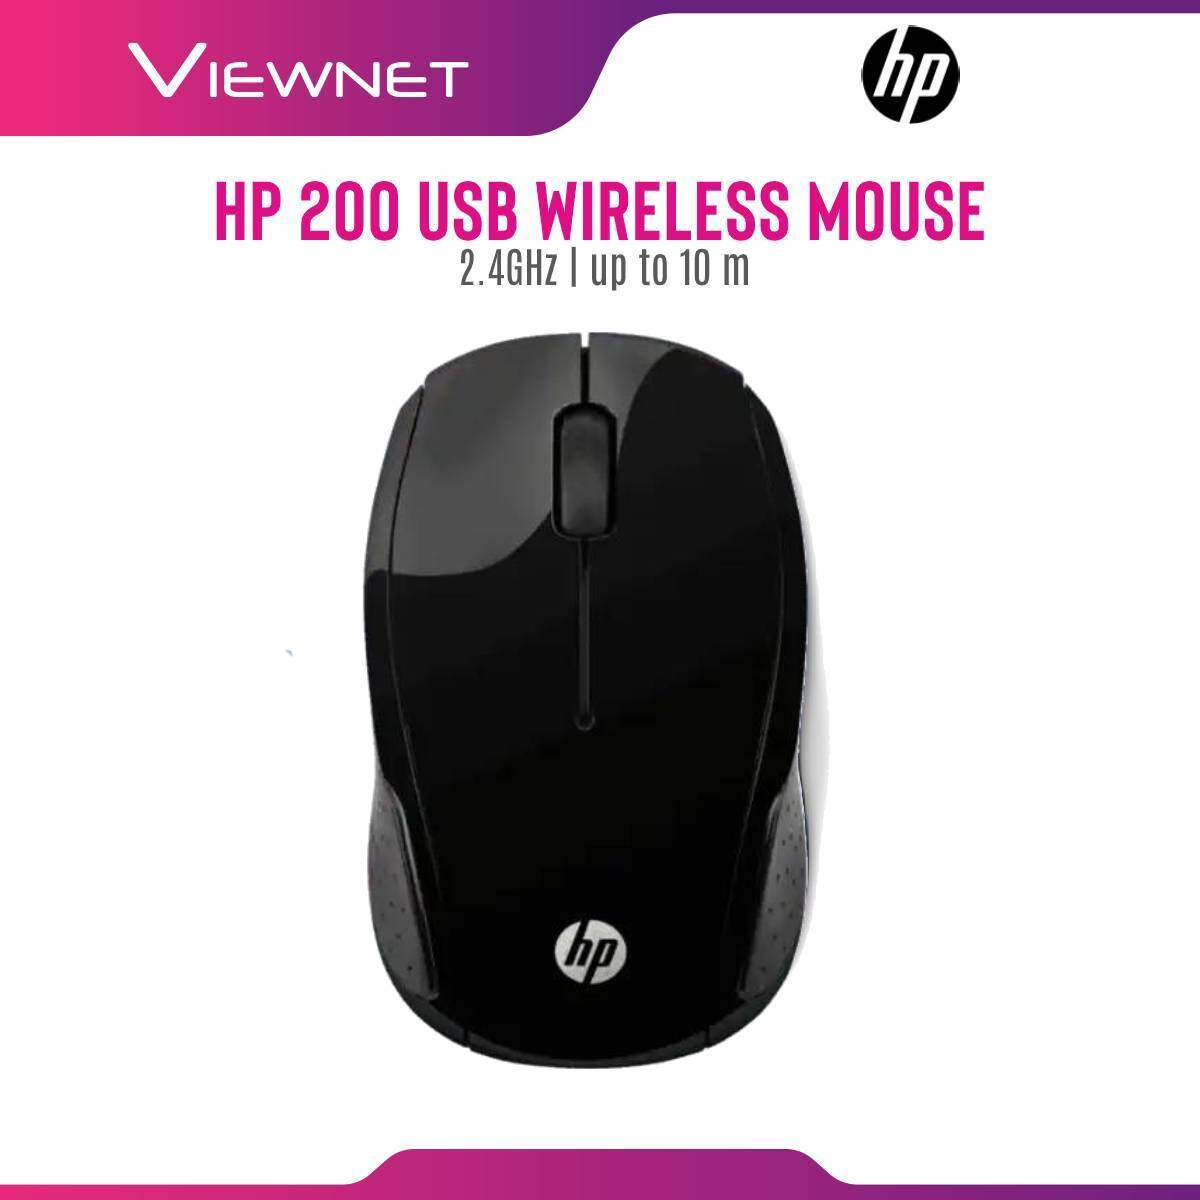 HP Wireless Mouse 200, 2.4GHz wireless connection, 2 AAA batteries included